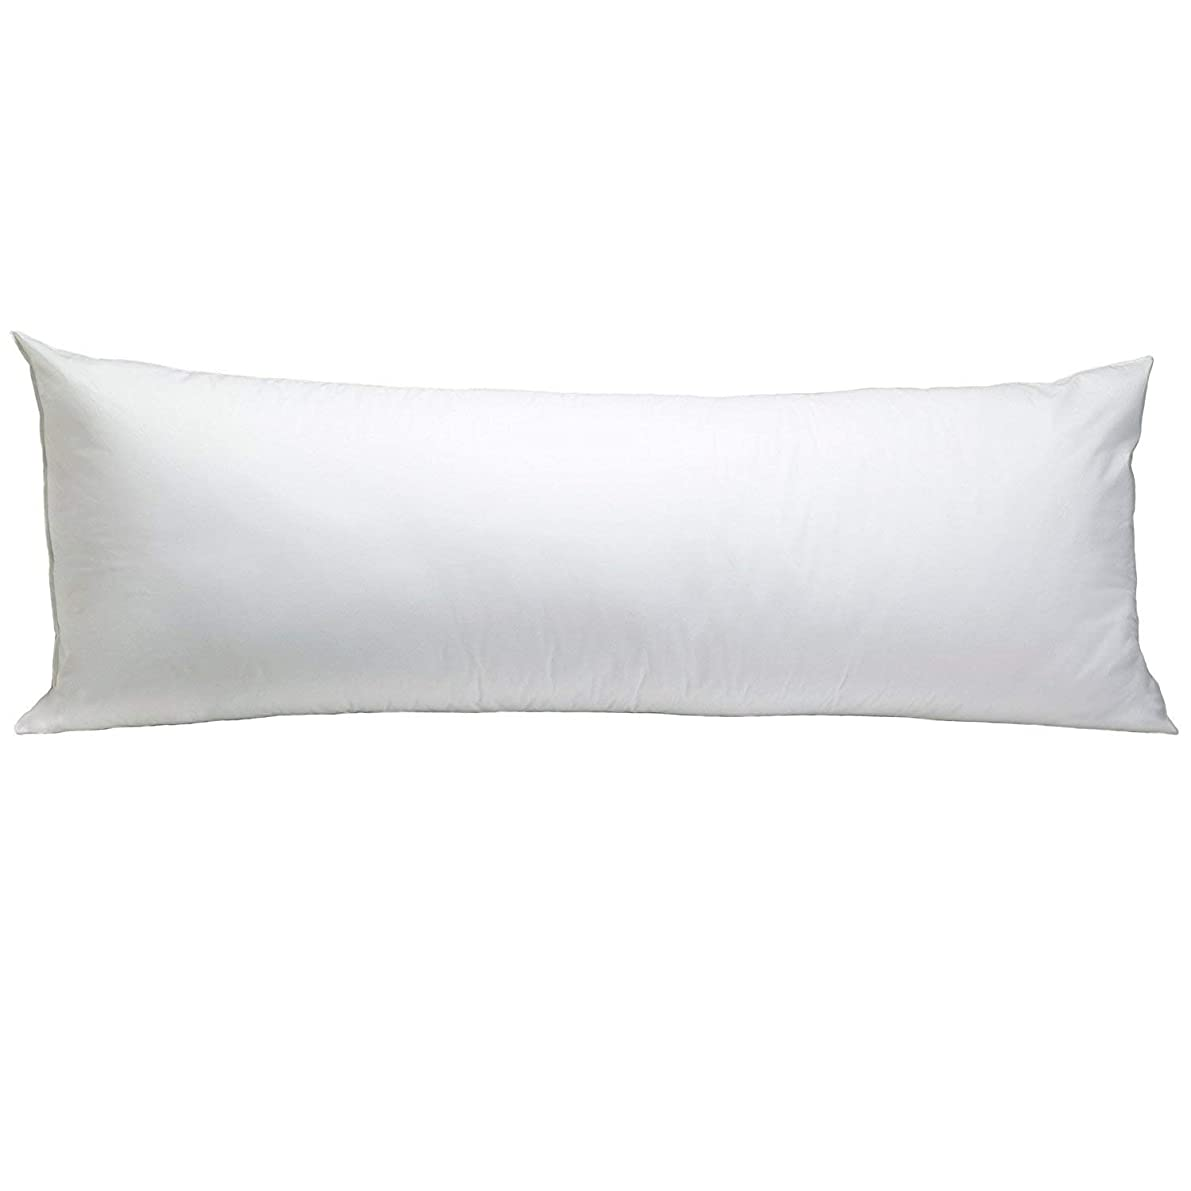 SC-Collection Body Pillowcase 21x60 Set of 1 Body Pillow Cases Zipper Closer 500 Thread Count Quality Body Pillow Pillowcases White Solid with 100% Egyptian Cotton